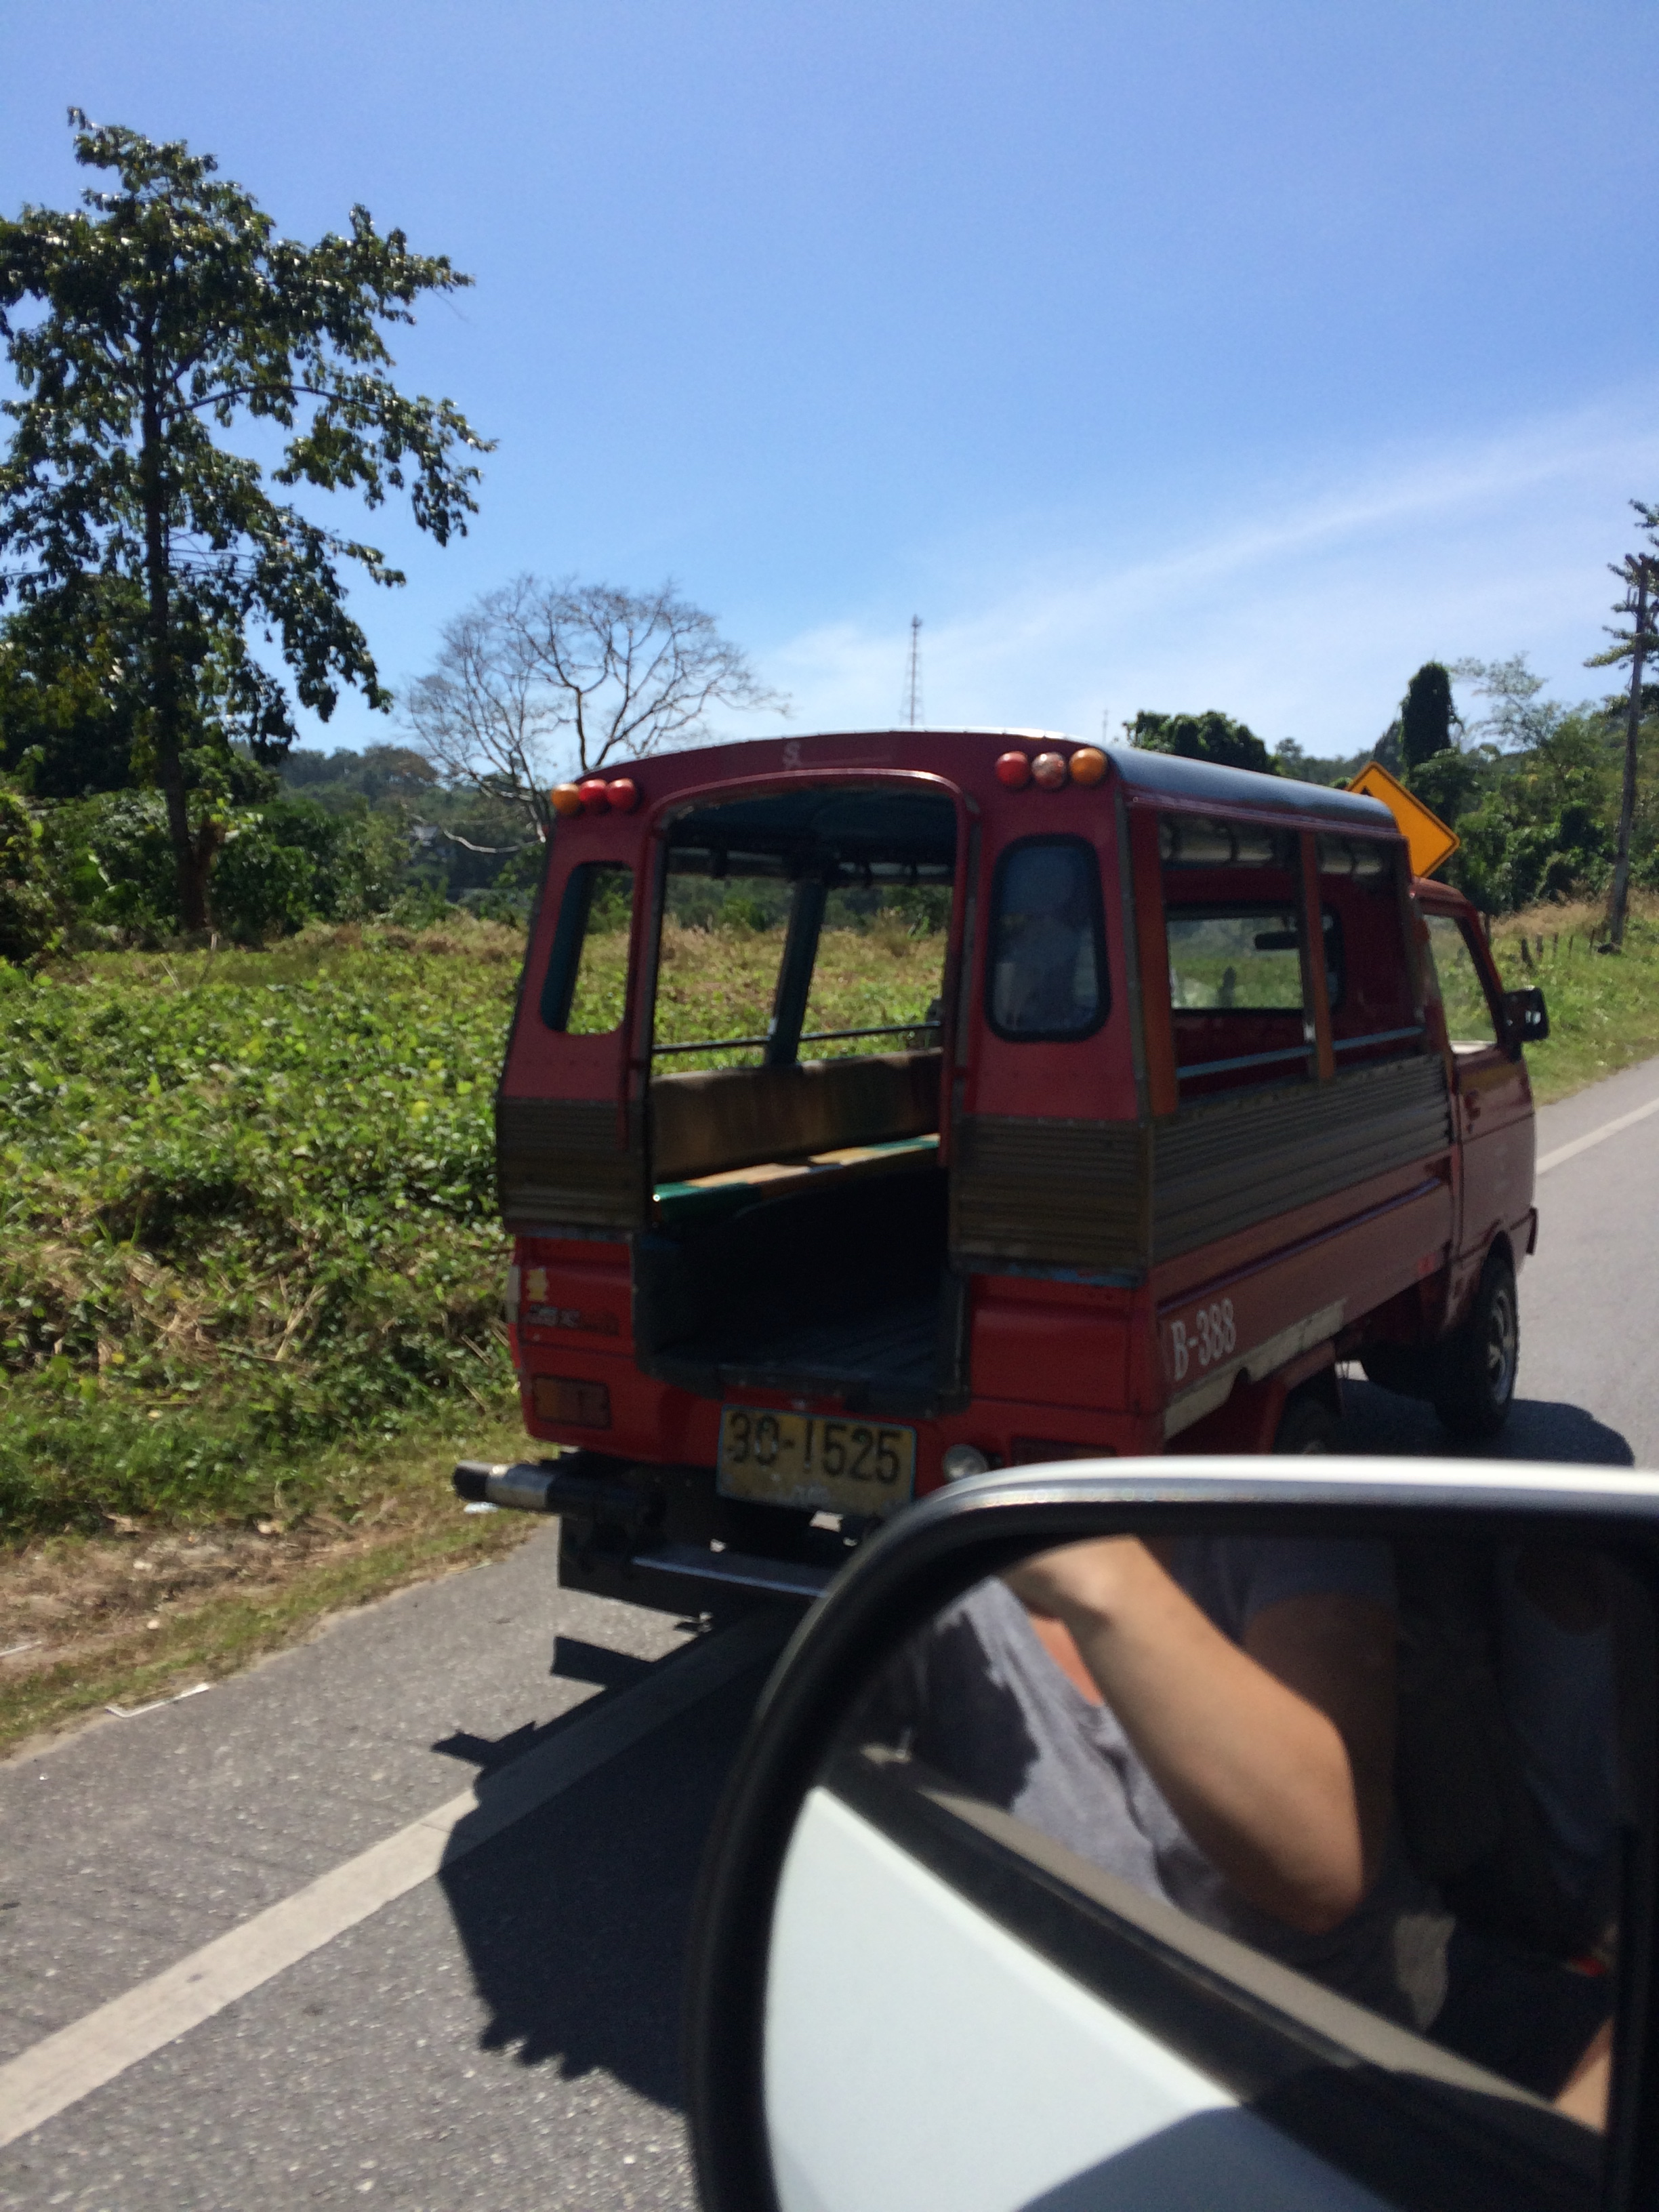 These adorable little taxis are usually found in Patong, but every once in a while we pass them on the road